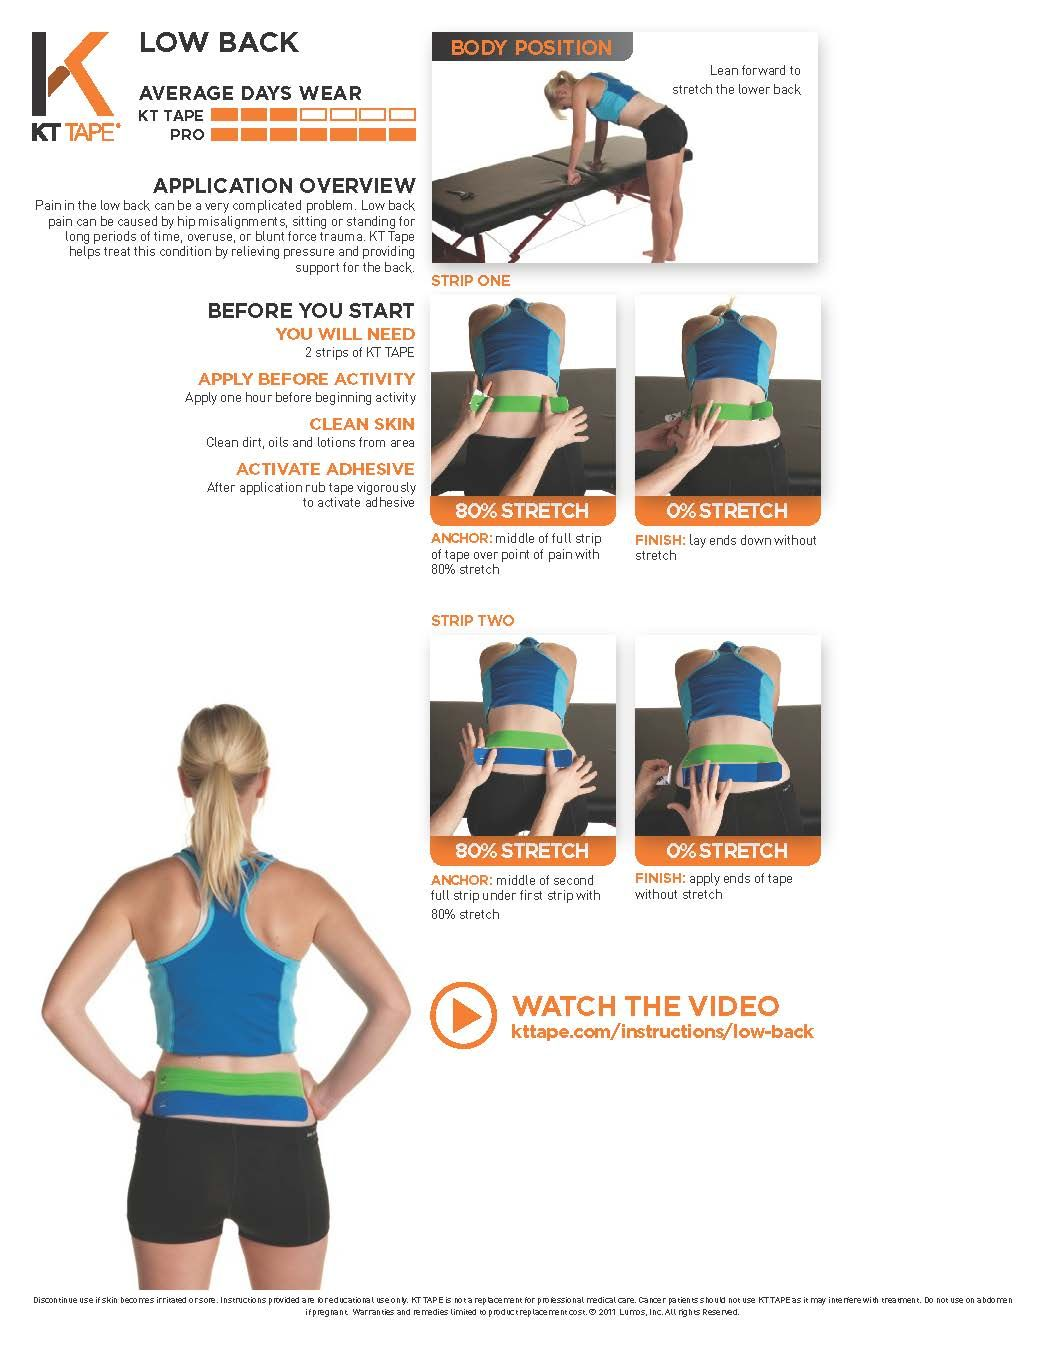 Low Back Taping Kt Tape Helps Treat This Condition By Relieving